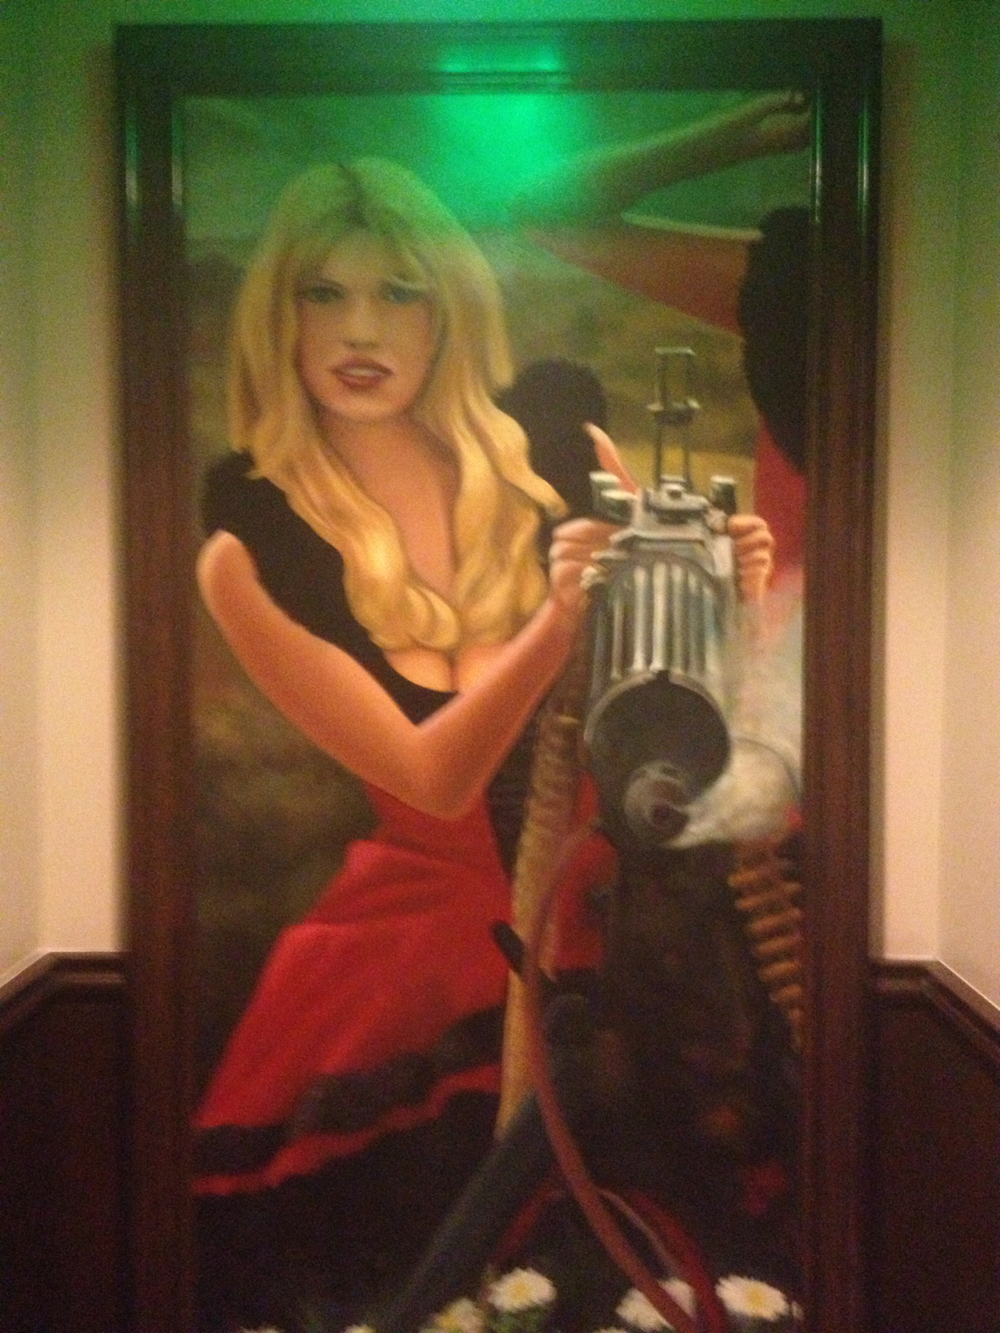 Blonde with Gatling gun. Only in a Vegas restaurant…